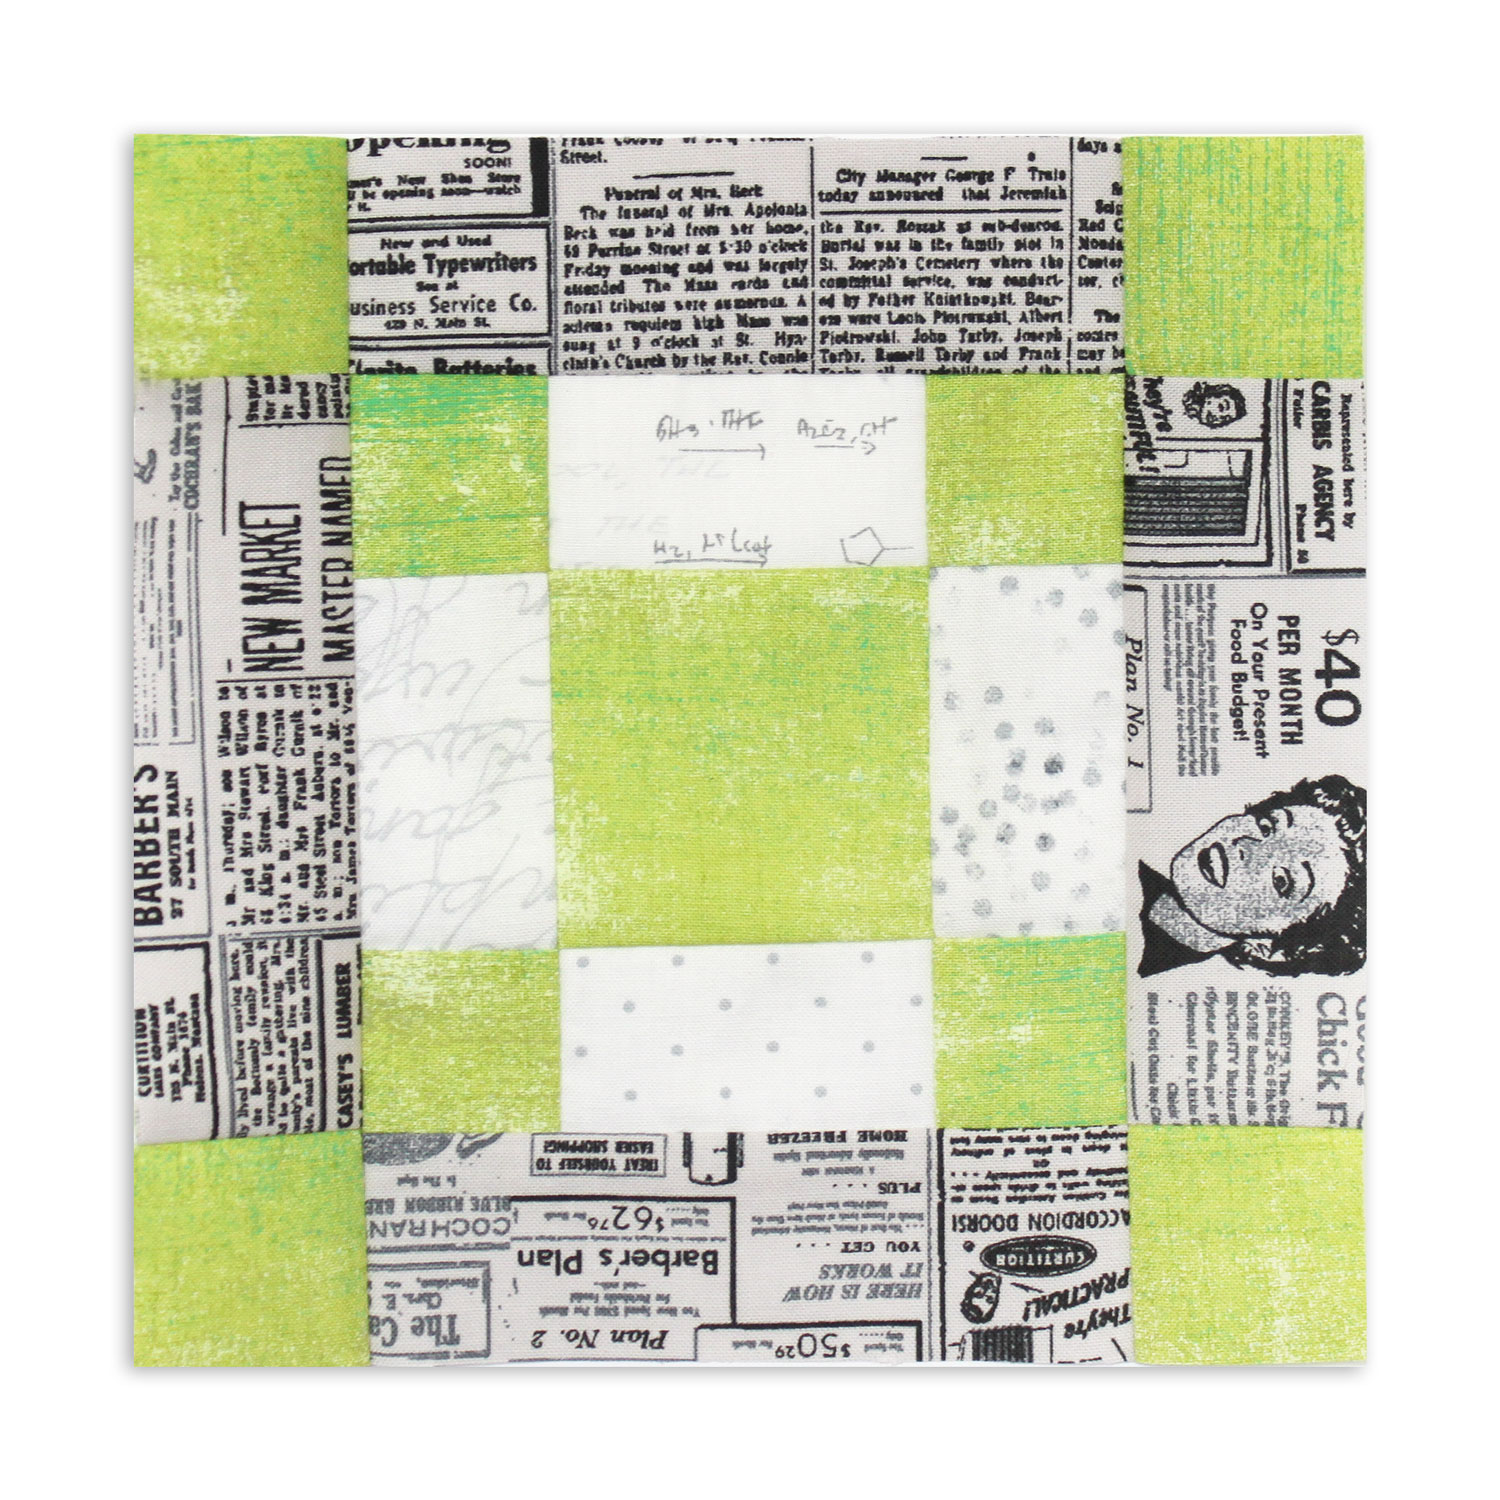 Free quilt along Blockheads 2018, Block 3: Pensylvania Fabrics used in the block are from Moda,Basic Grey GRUNGE and Zen Chic PAPER